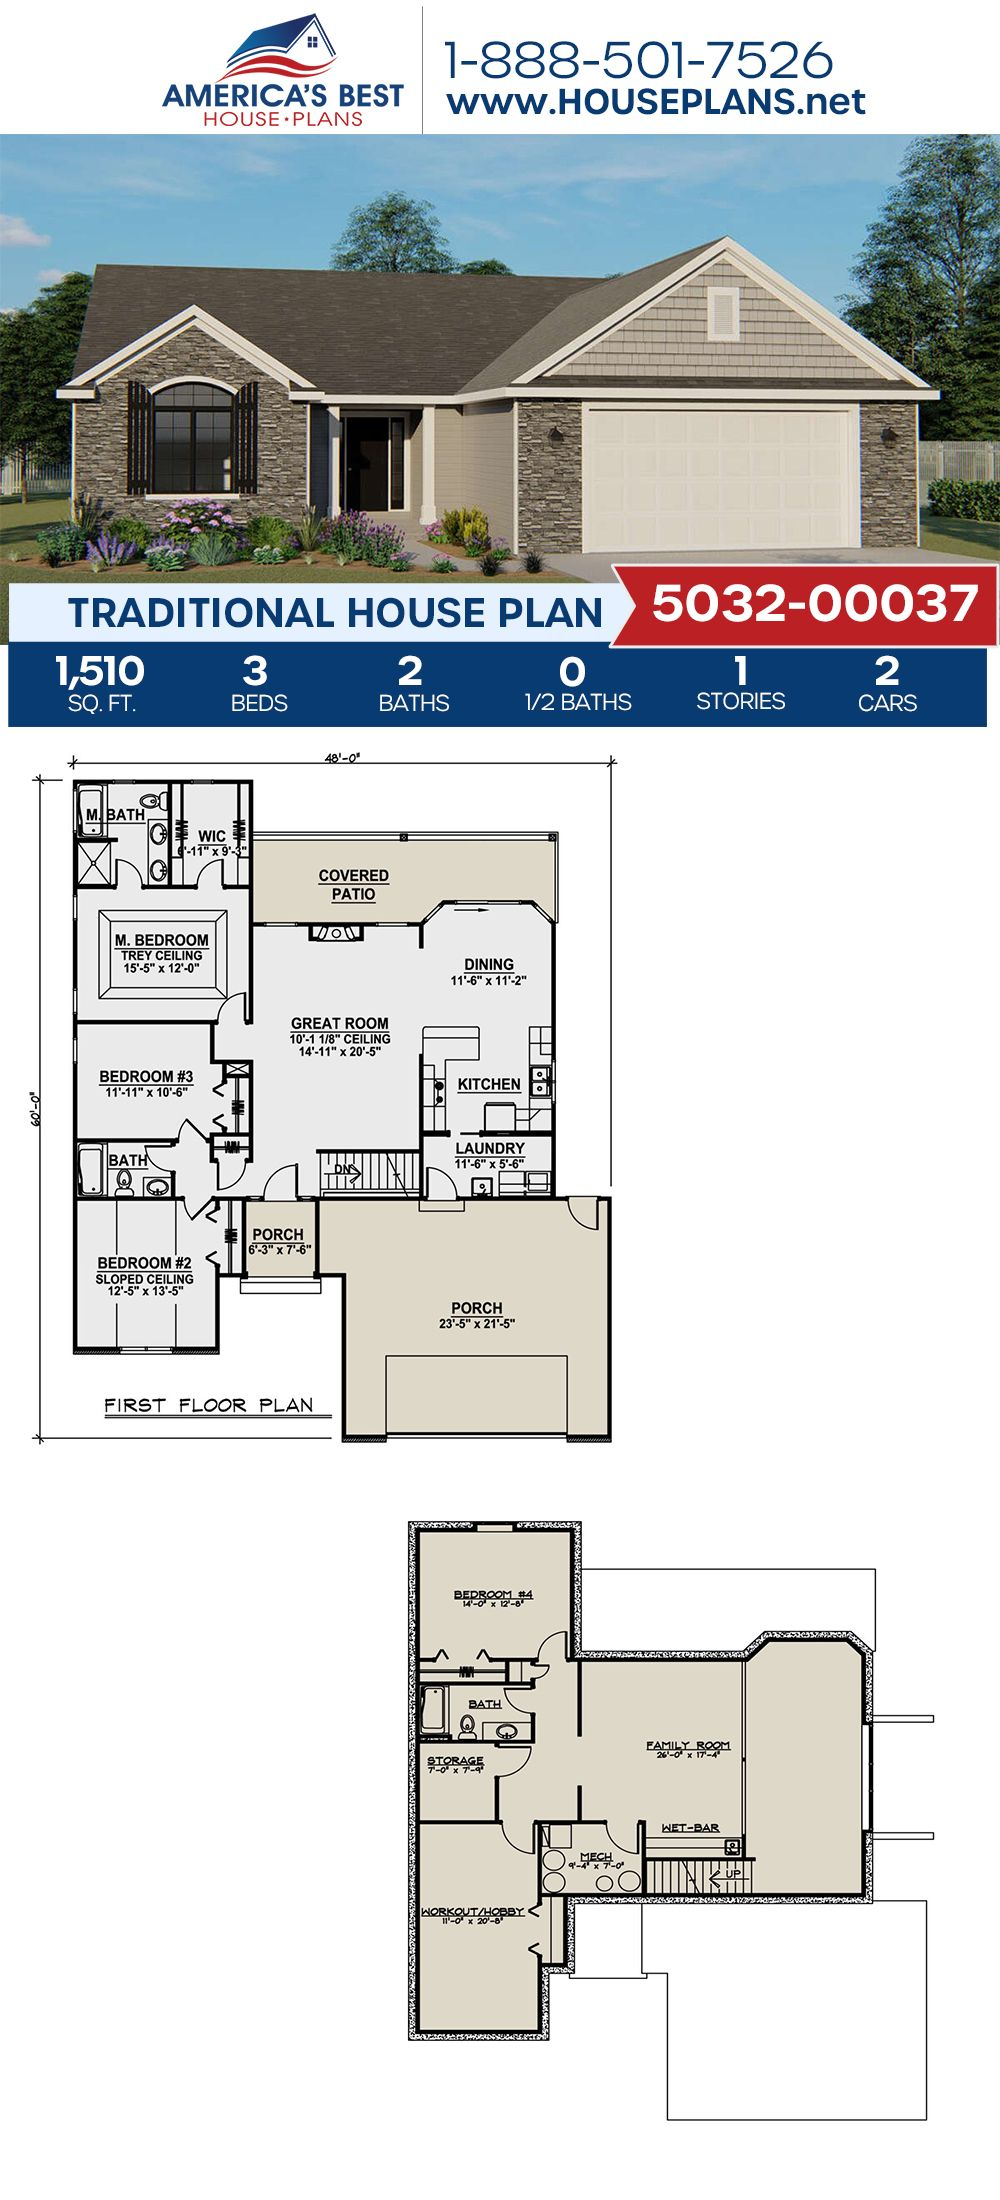 House Plan 5032 00037 Traditional Plan 1 510 Square Feet 3 Bedrooms 2 Bathrooms In 2020 House Plans Traditional House Plans Dream House Plans